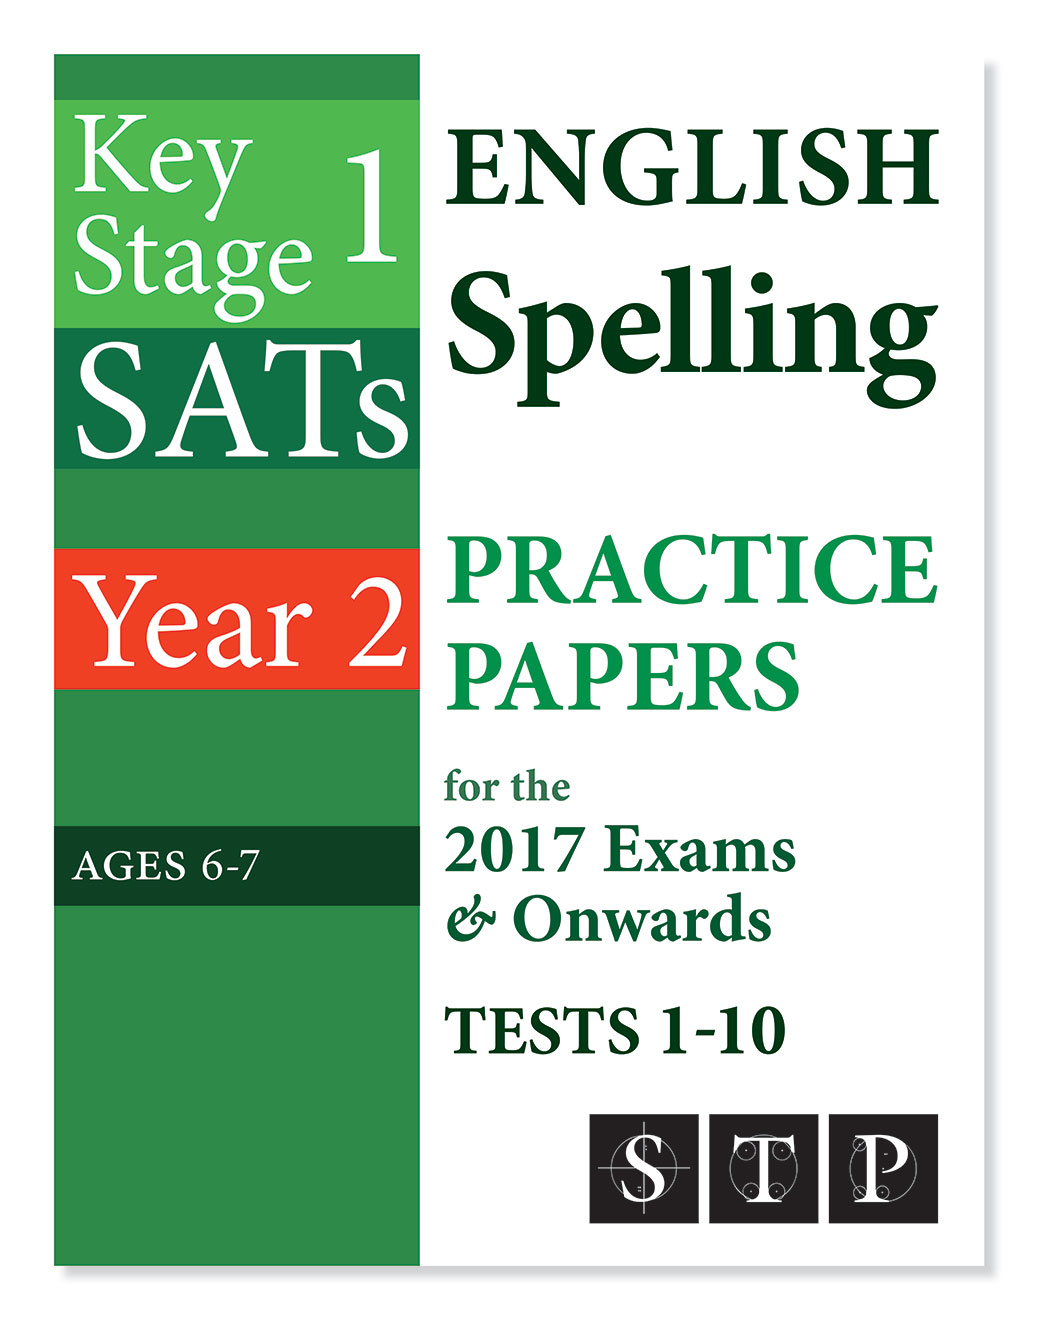 STP Books KS1 SATs English Spelling Practice Papers for the 2017 Exams & Onwards Tests 1-10 (Year 2: Ages 6-7)